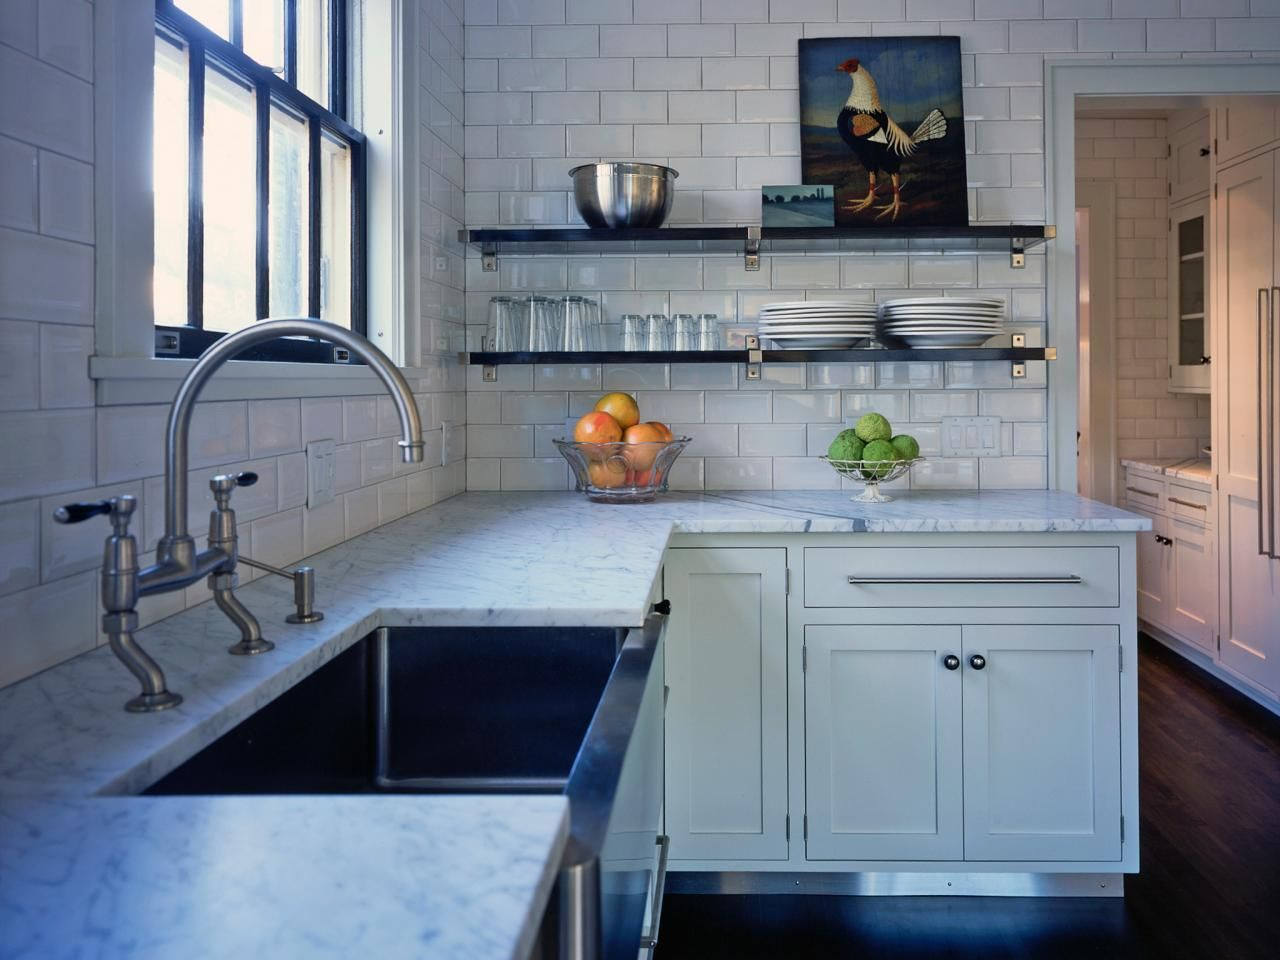 15+ Design Ideas for Kitchens Without Upper Cabinets | Subway tiles ...